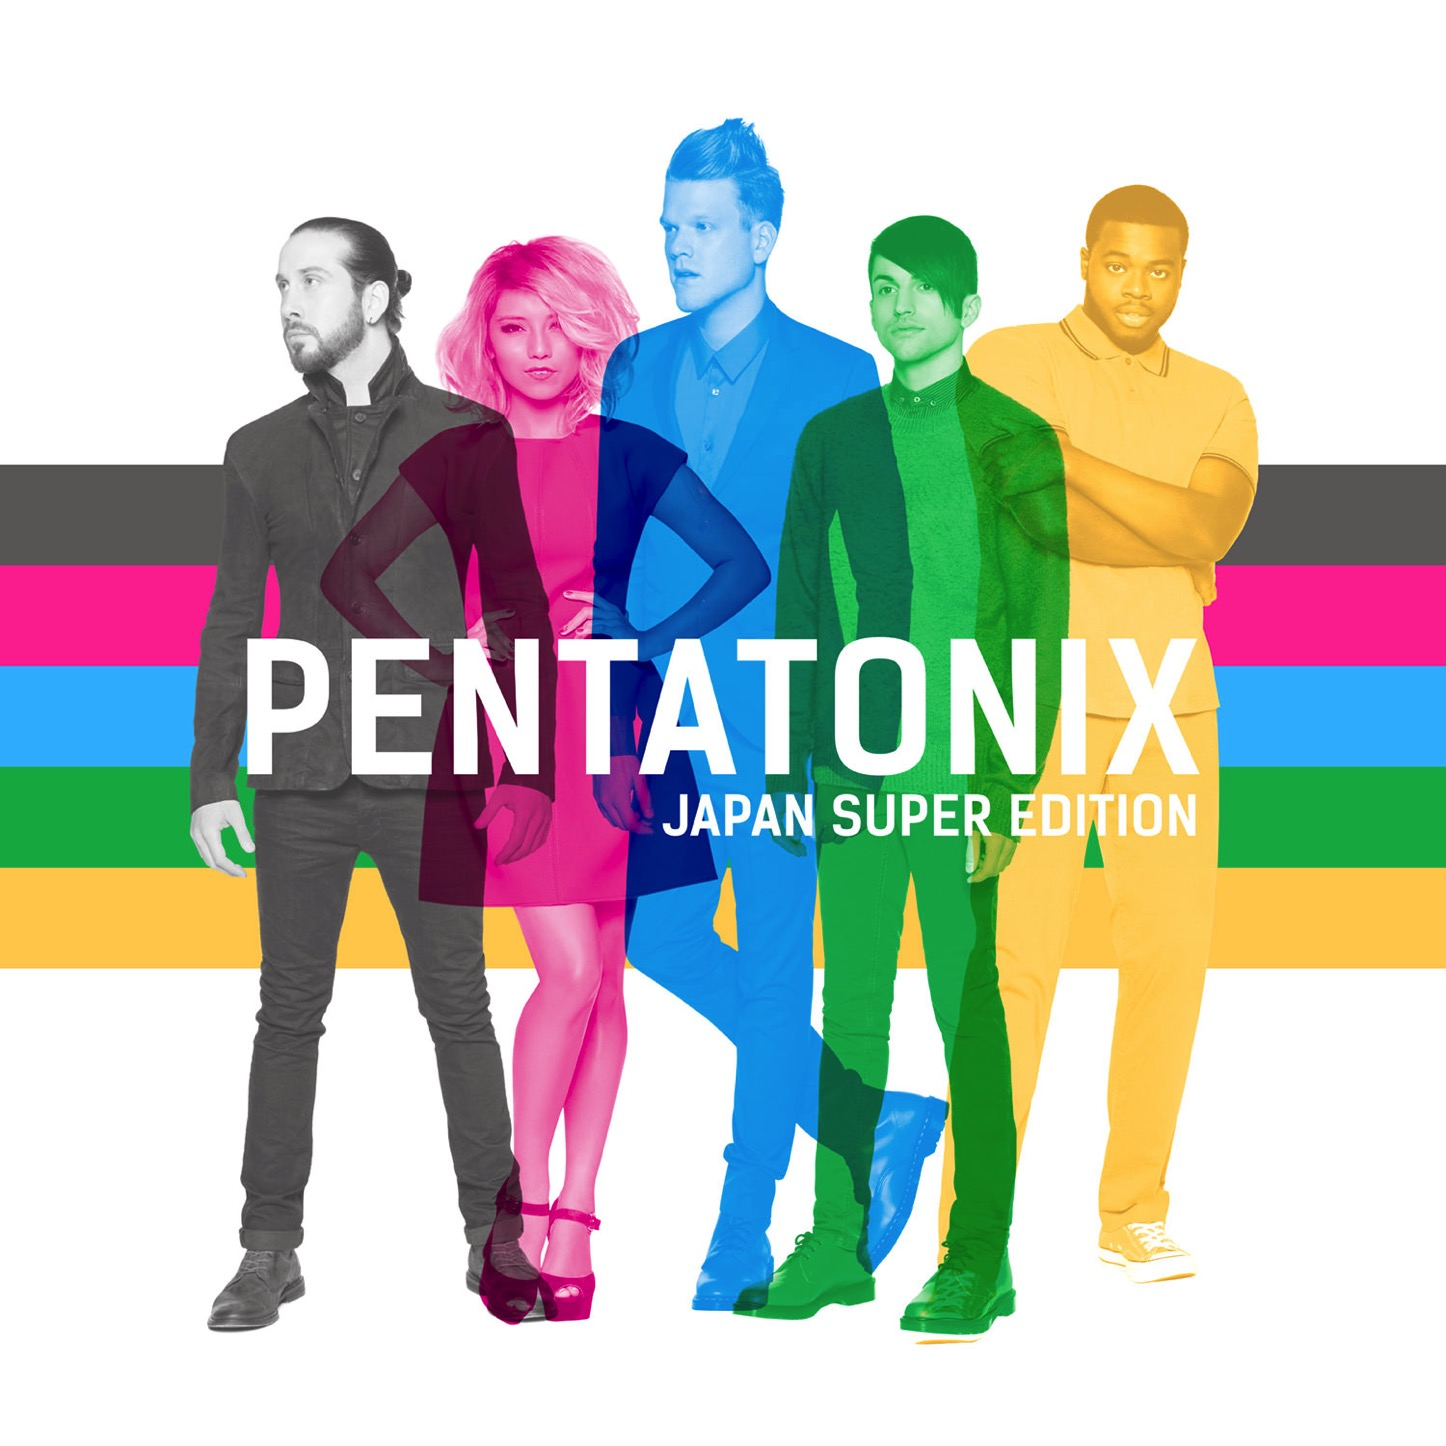 Pentatonix (Japan Super Edition)